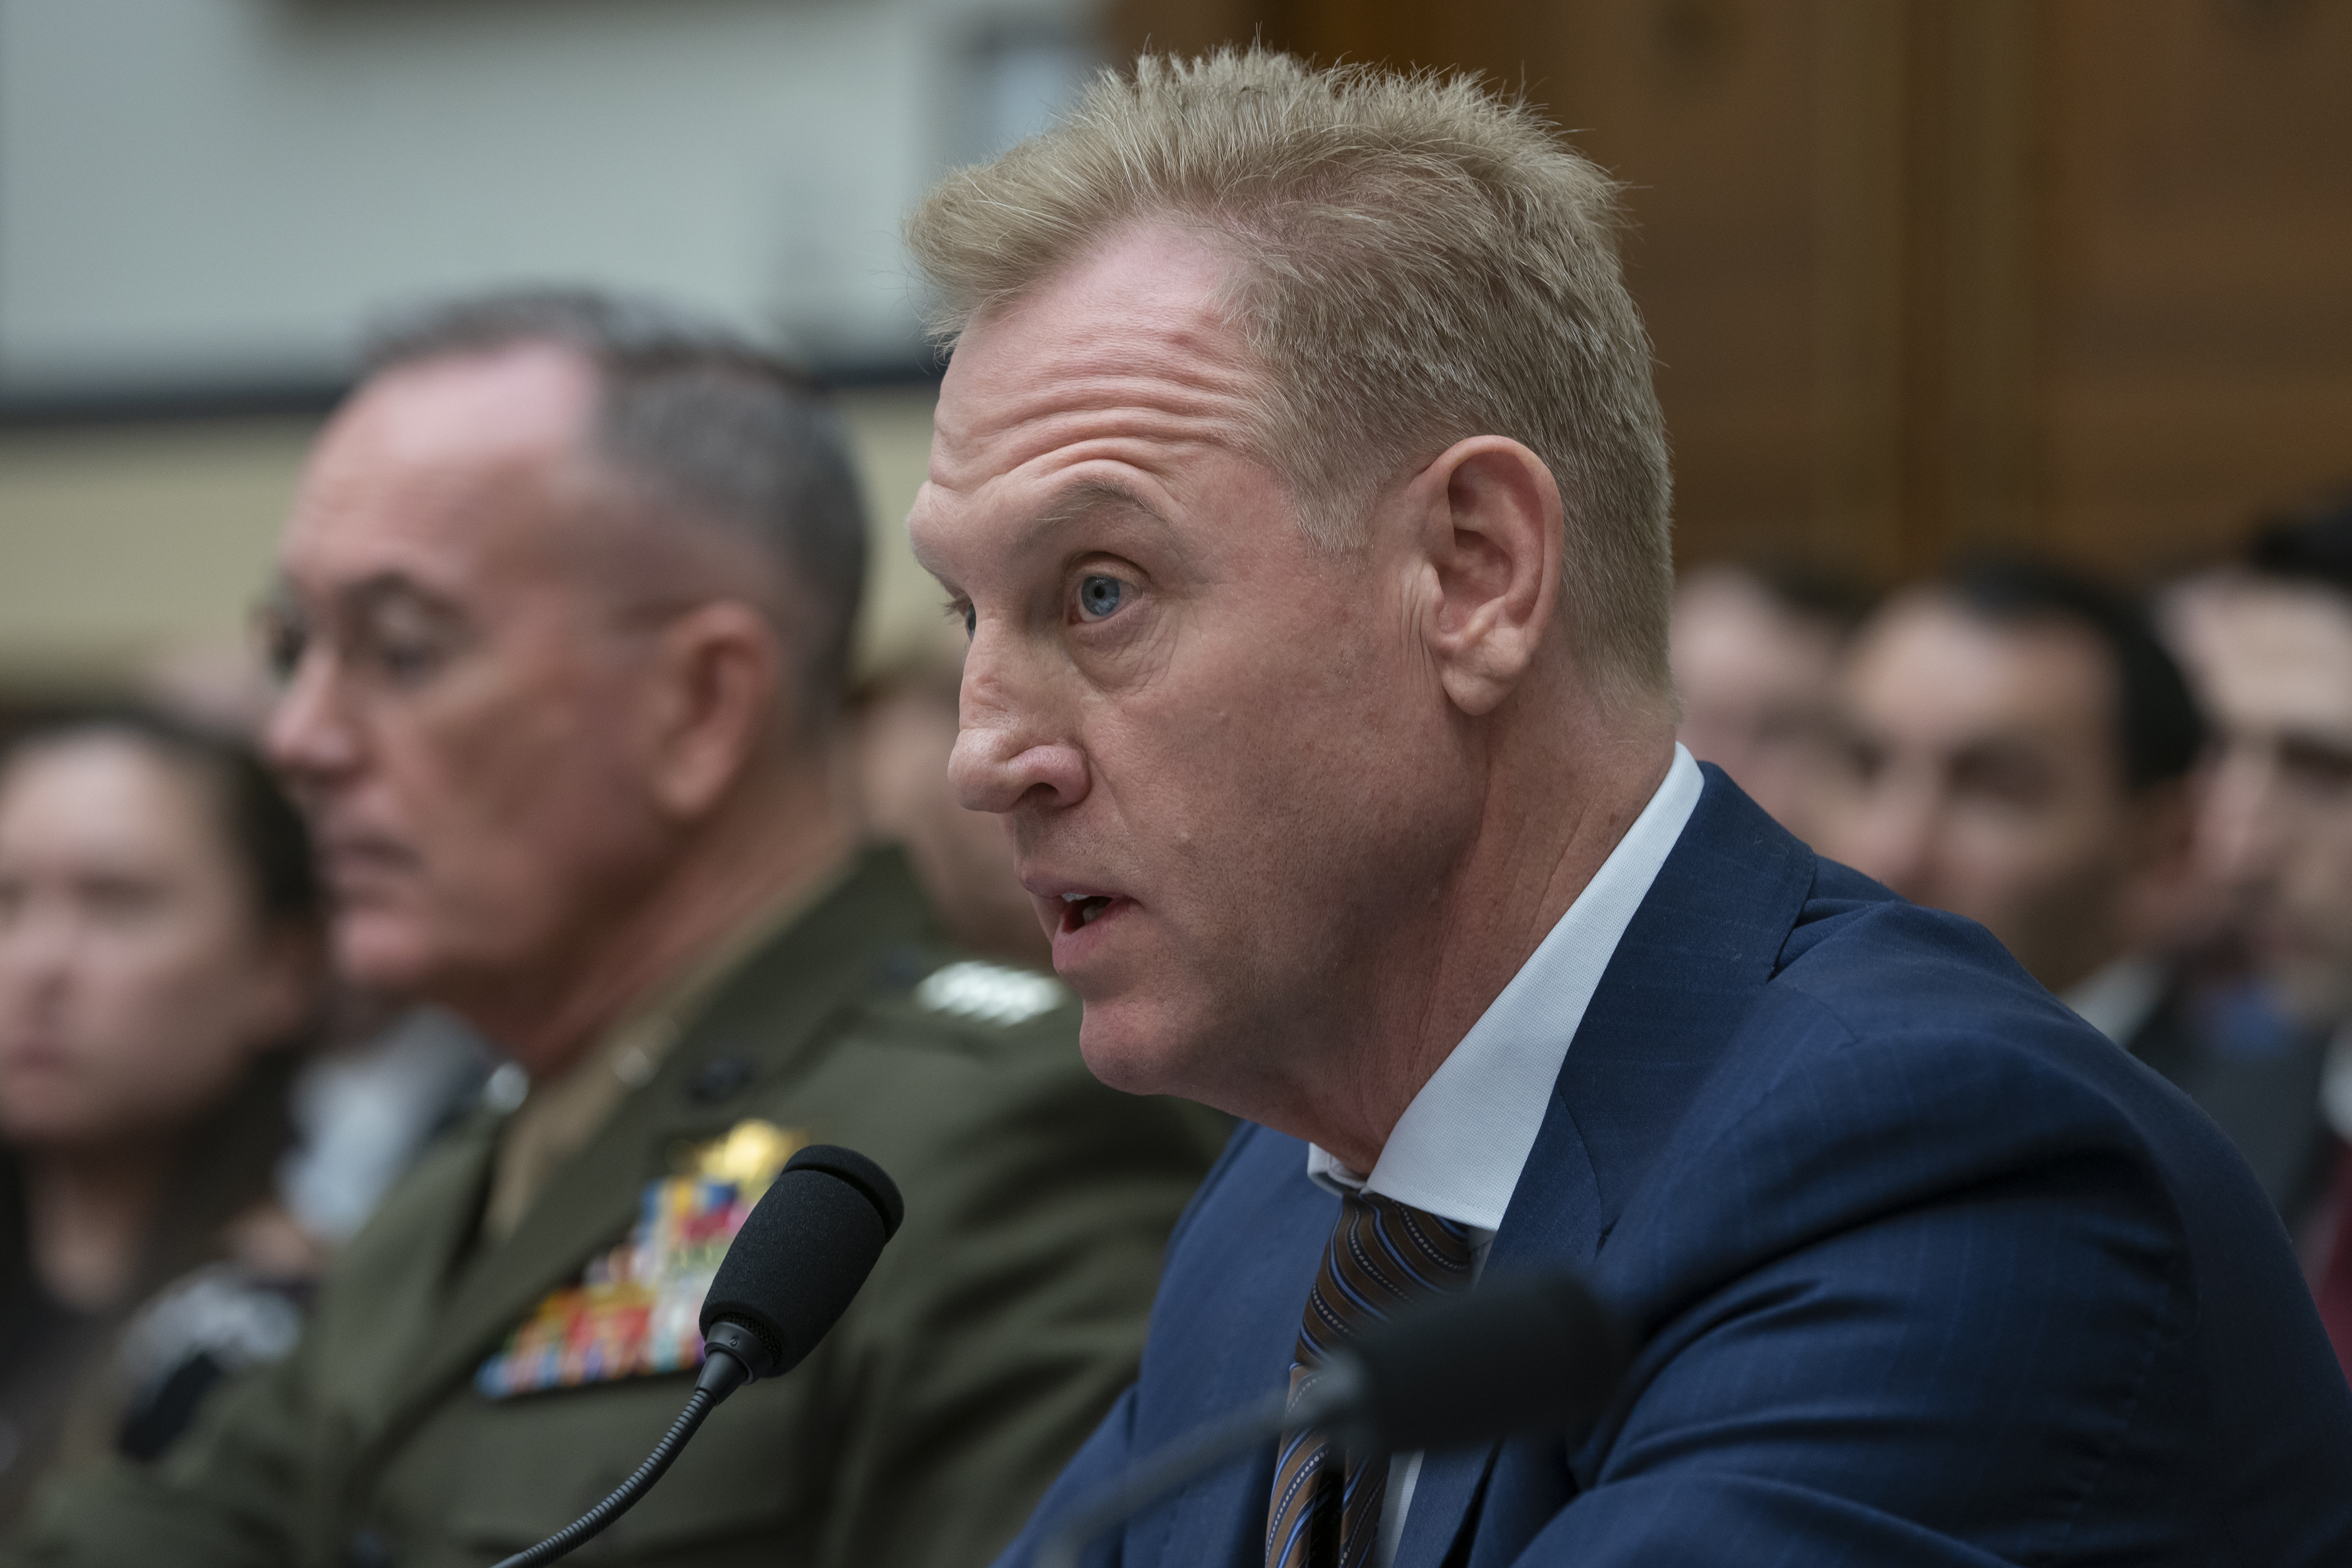 Acting Defense Secretary Patrick Shanahan, joined at left by Chairman of the Joint Chiefs of Staff Gen. Joseph F. Dunford, testifies at a House Armed Services Committee hearing on the fiscal year 2020 Pentagon budget, on Capitol Hill in Washington, Tuesday, March 26, 2019. (J. Scott Applewhite/AP)